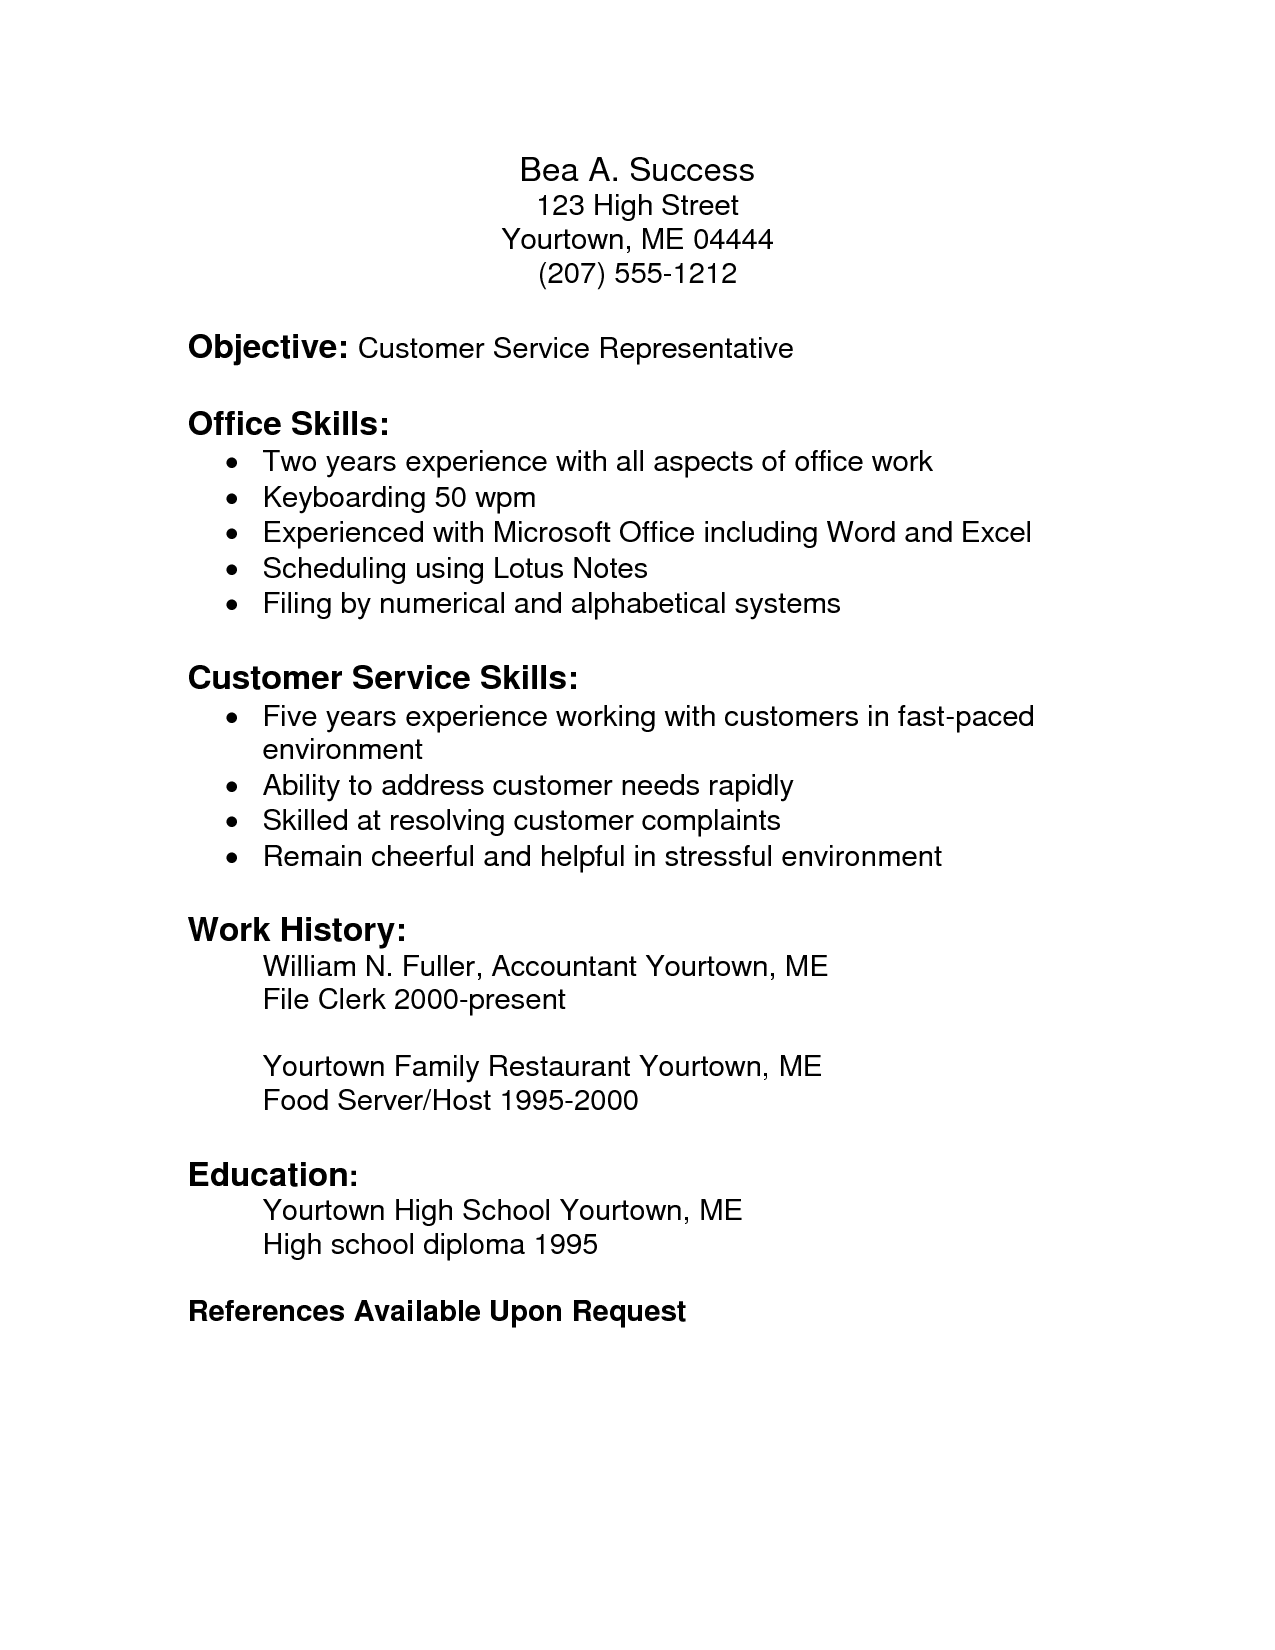 Resume Customer Service Skills Brilliant Customer Service Skills Resume Examples  Sample Resume Center Design Inspiration